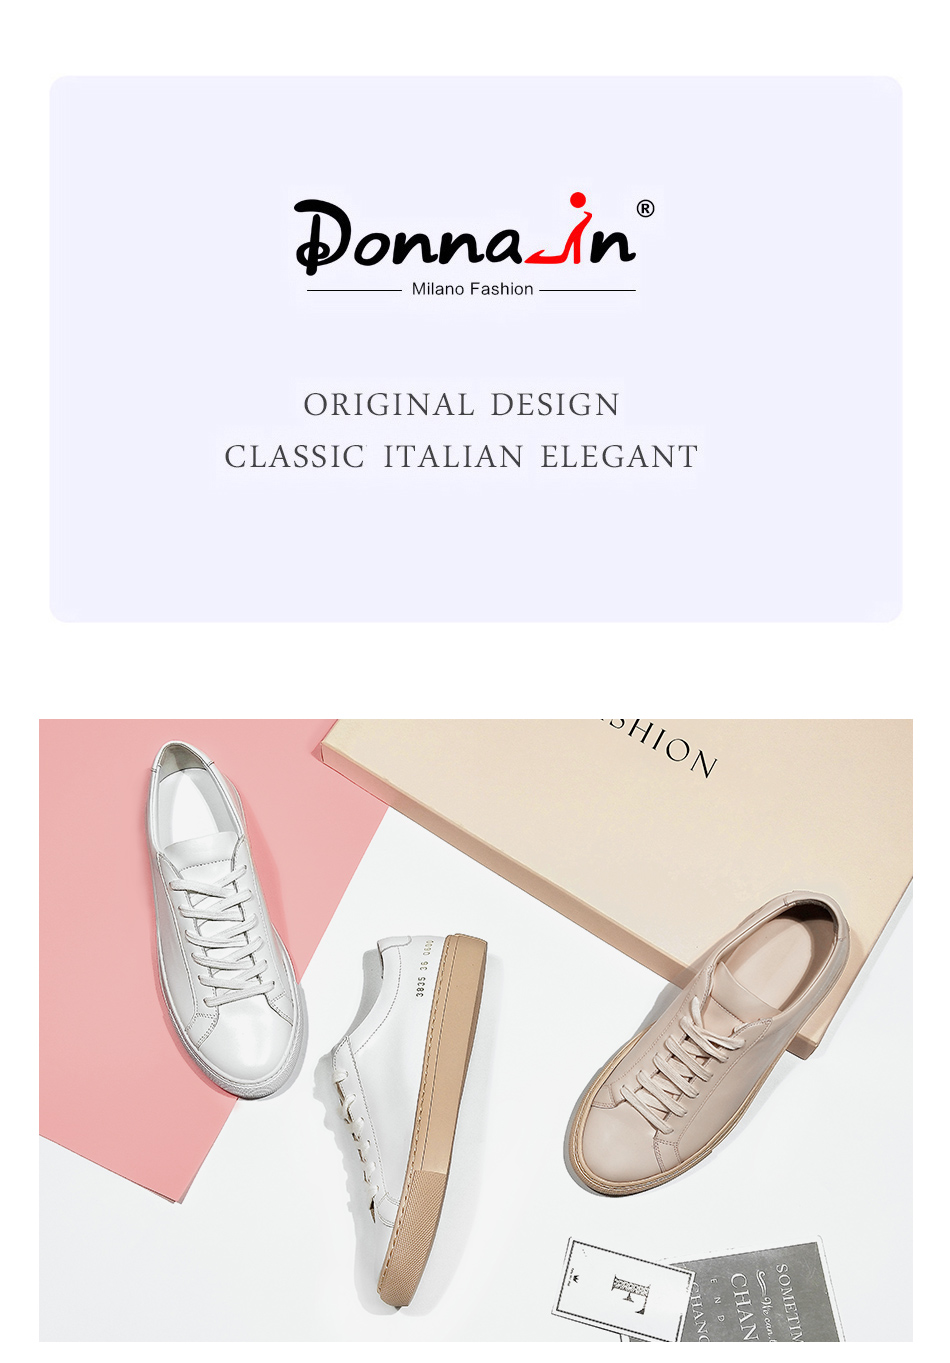 Donna-in Sneakers Women Genuine Leather Flat Low Heel Platform Ladies Lace Up Fashion Breathable Shoes Women 2018 White Nude (4)